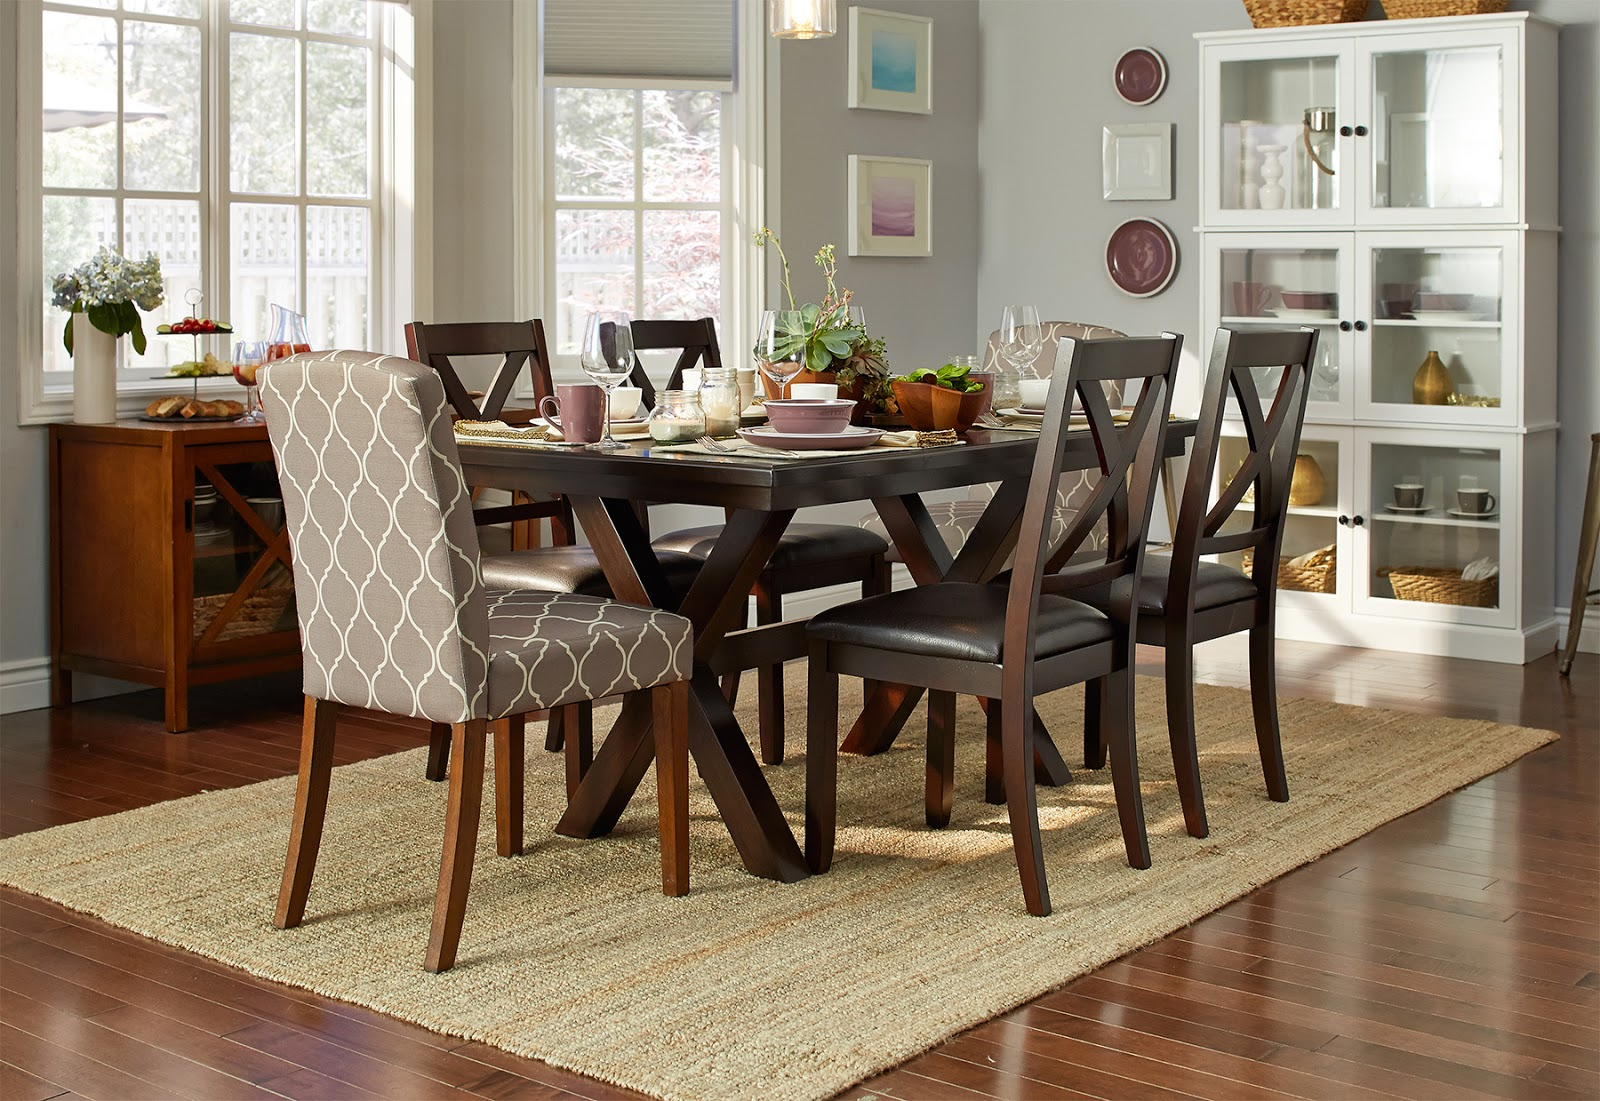 Canadian Dining Room Furniture elliven studio: introducing the canvas home and dining collection